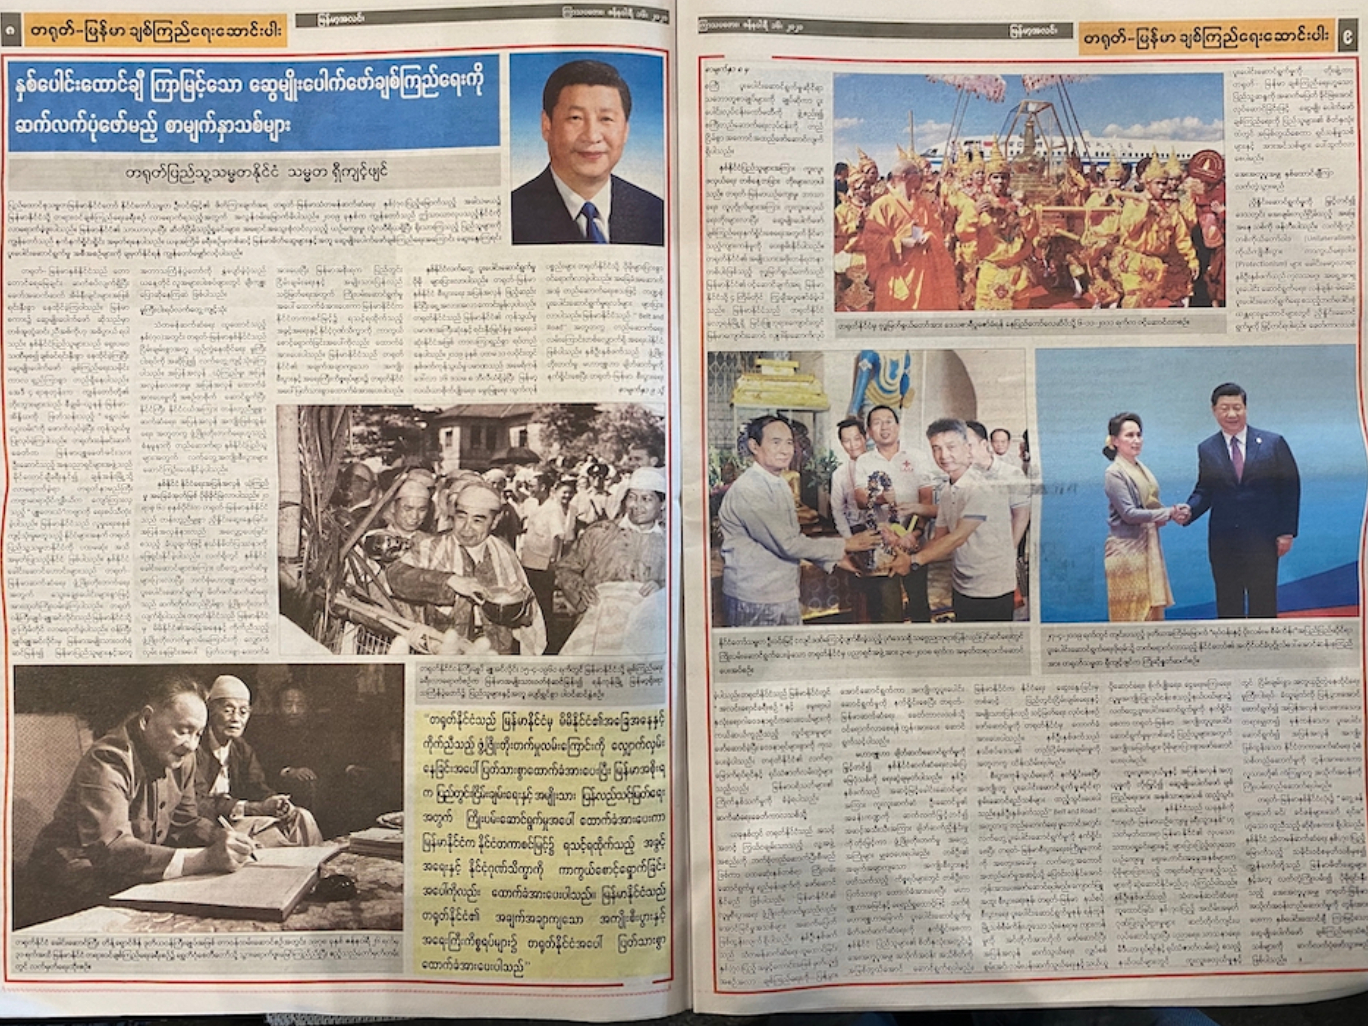 Full text of Xi's signed article on Myanmar newspapers